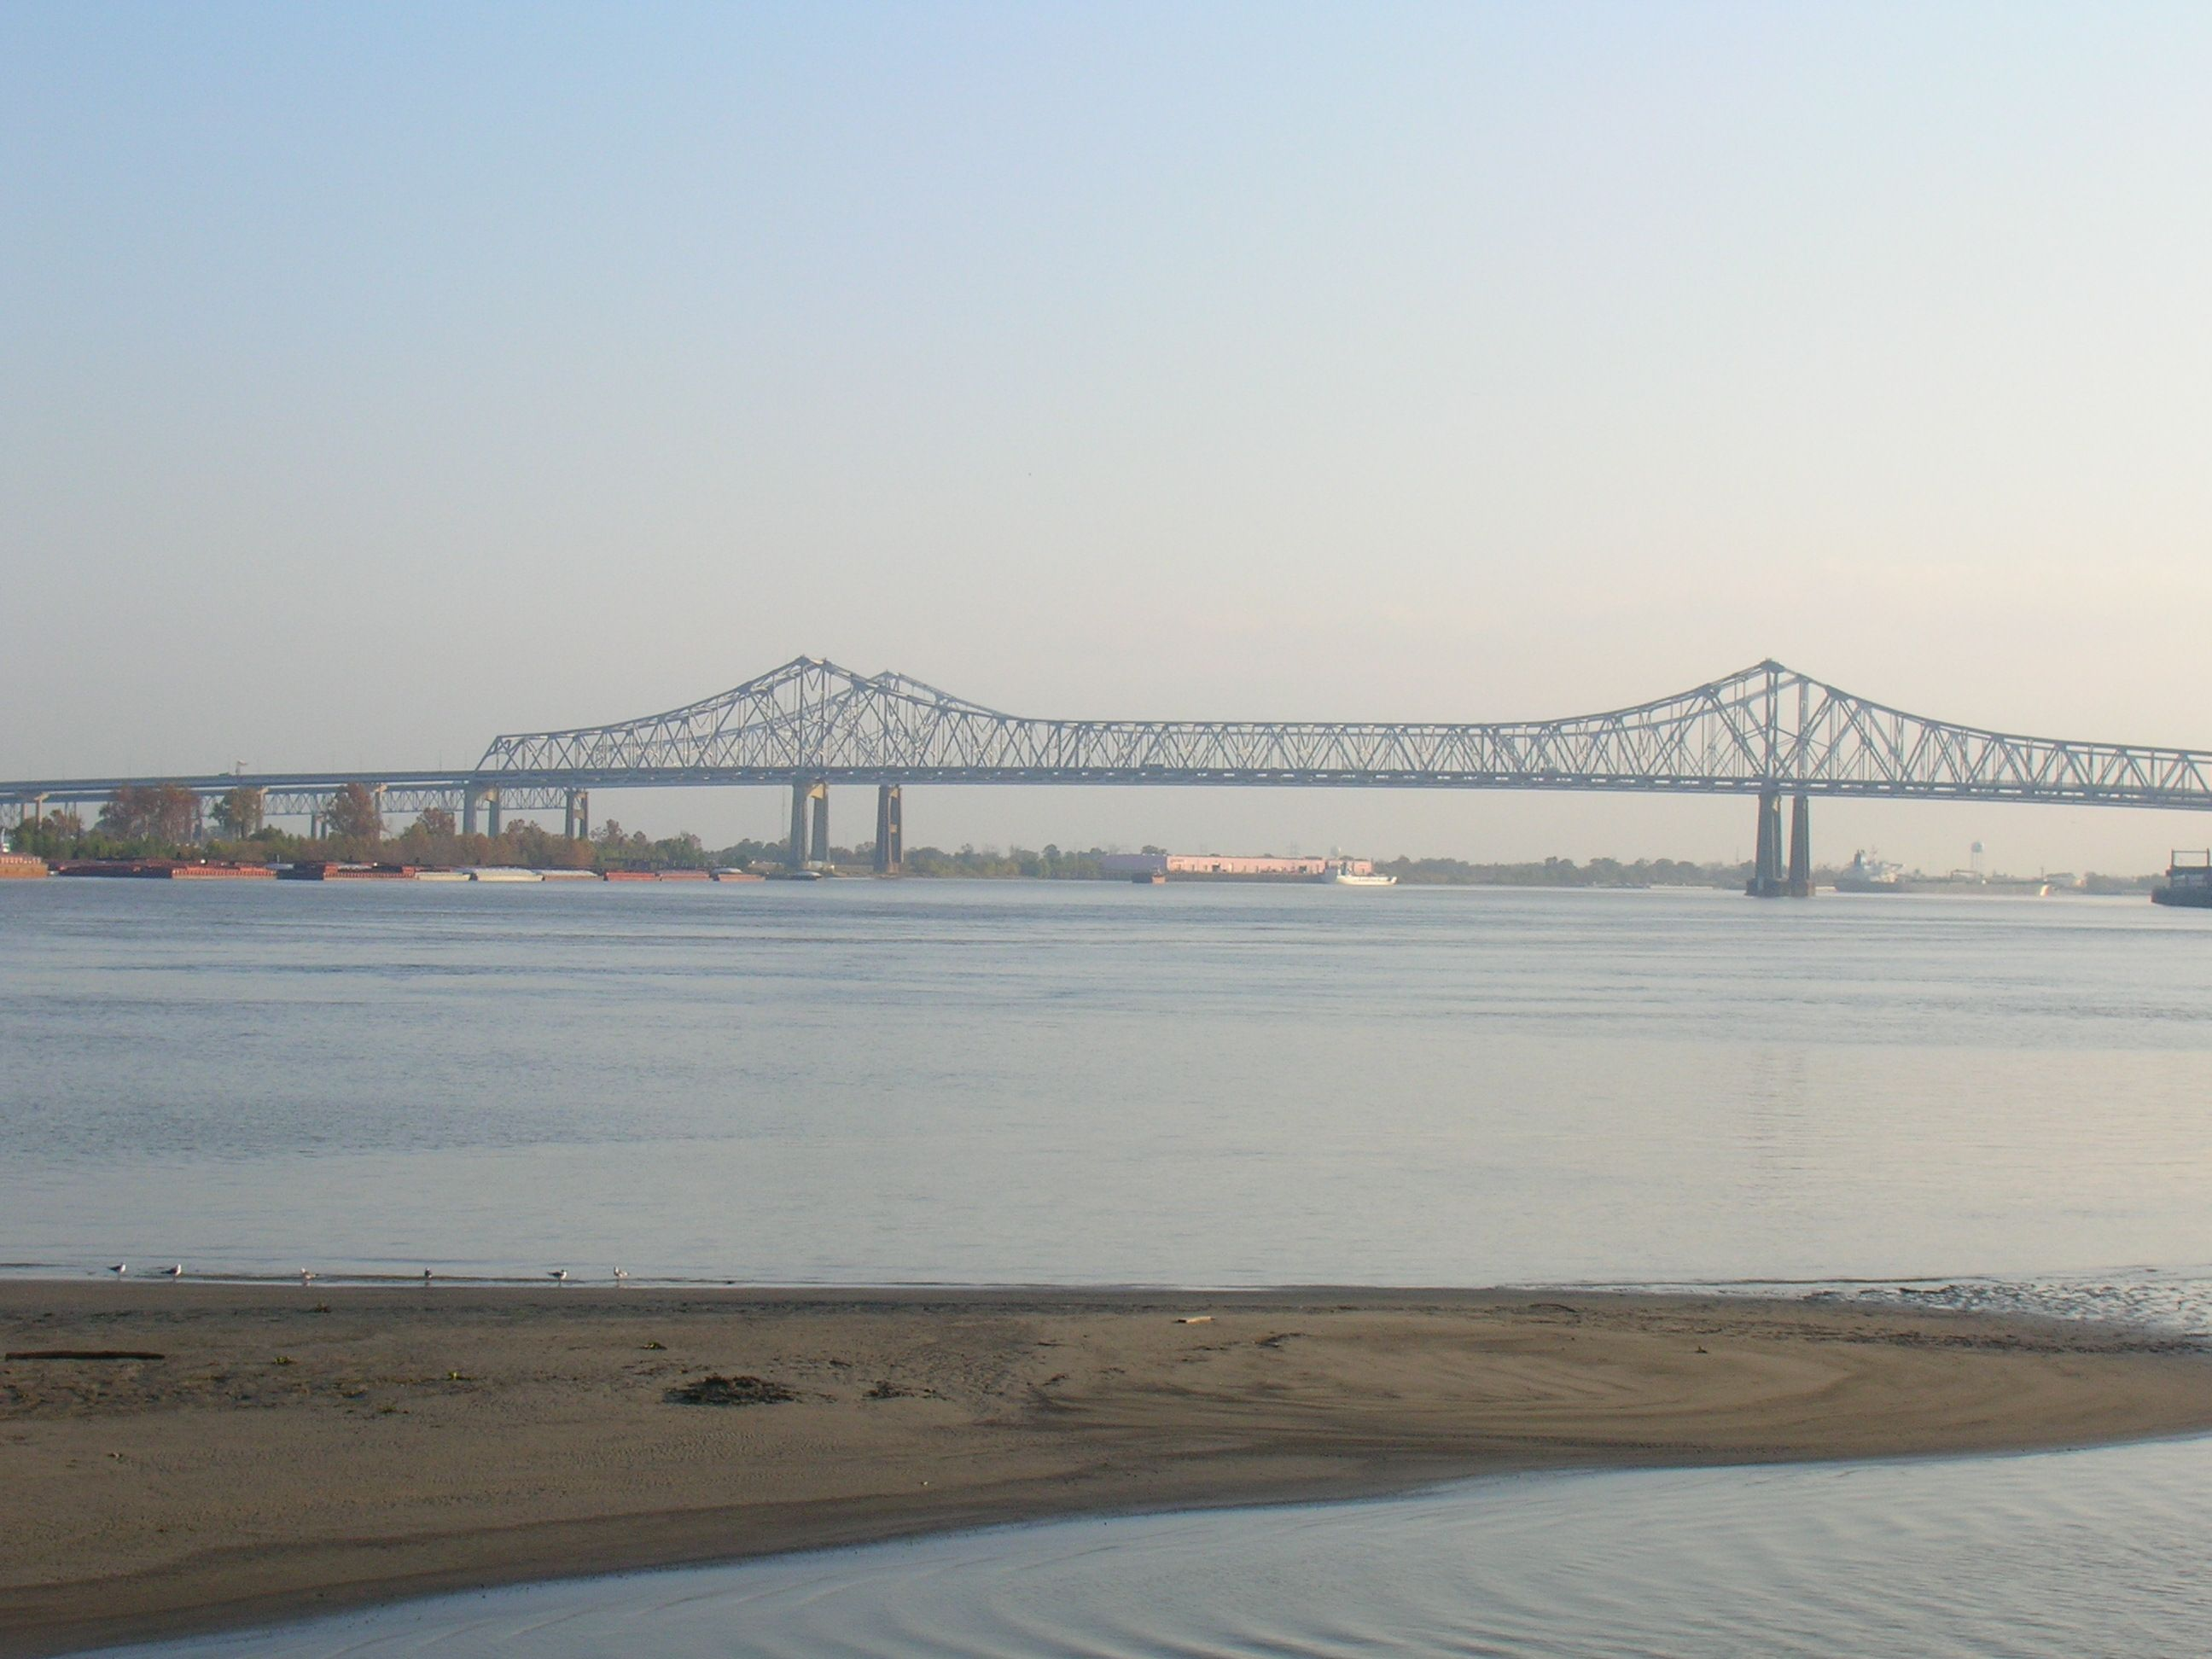 Mississippi River New Orleans- Crescent City Connection in background